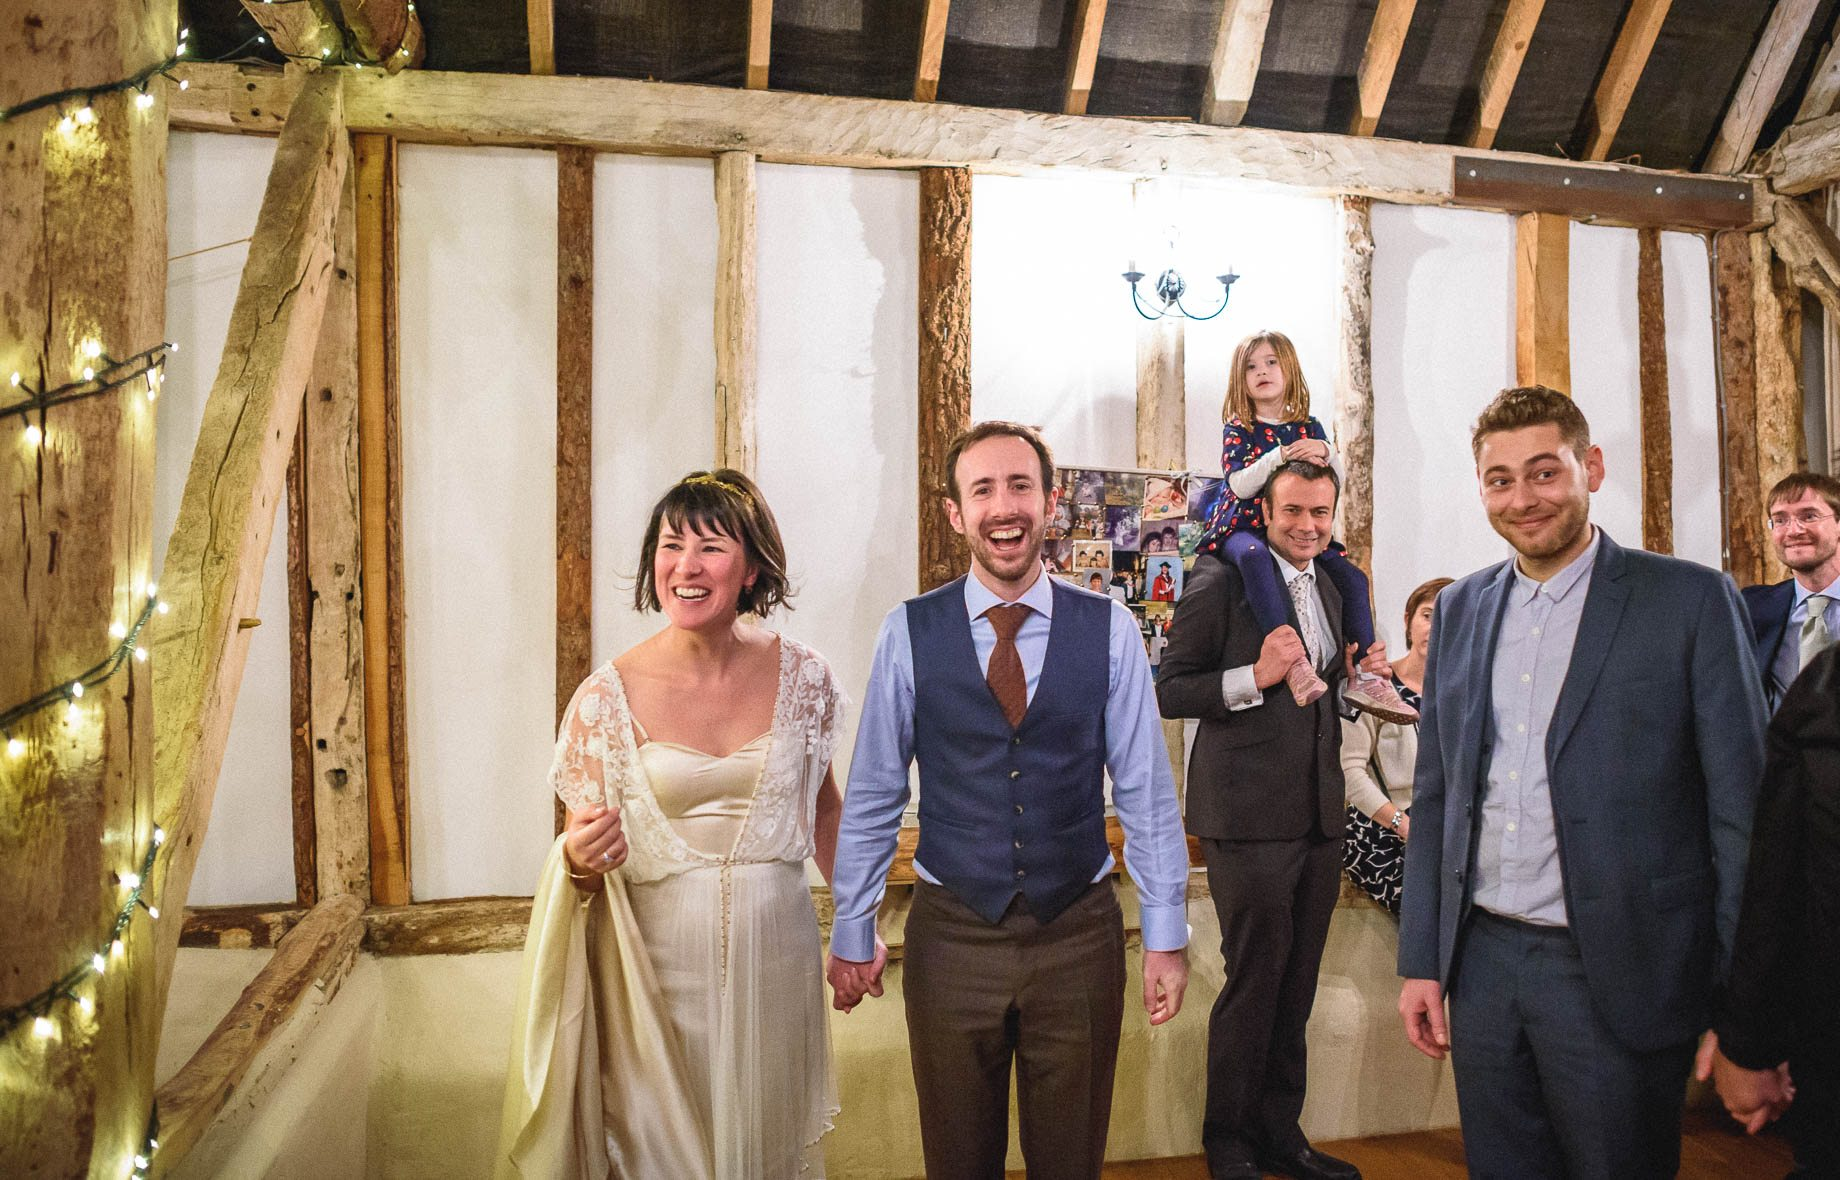 Clock Barn Wedding Photography - Eva and Ollie (166 of 170)